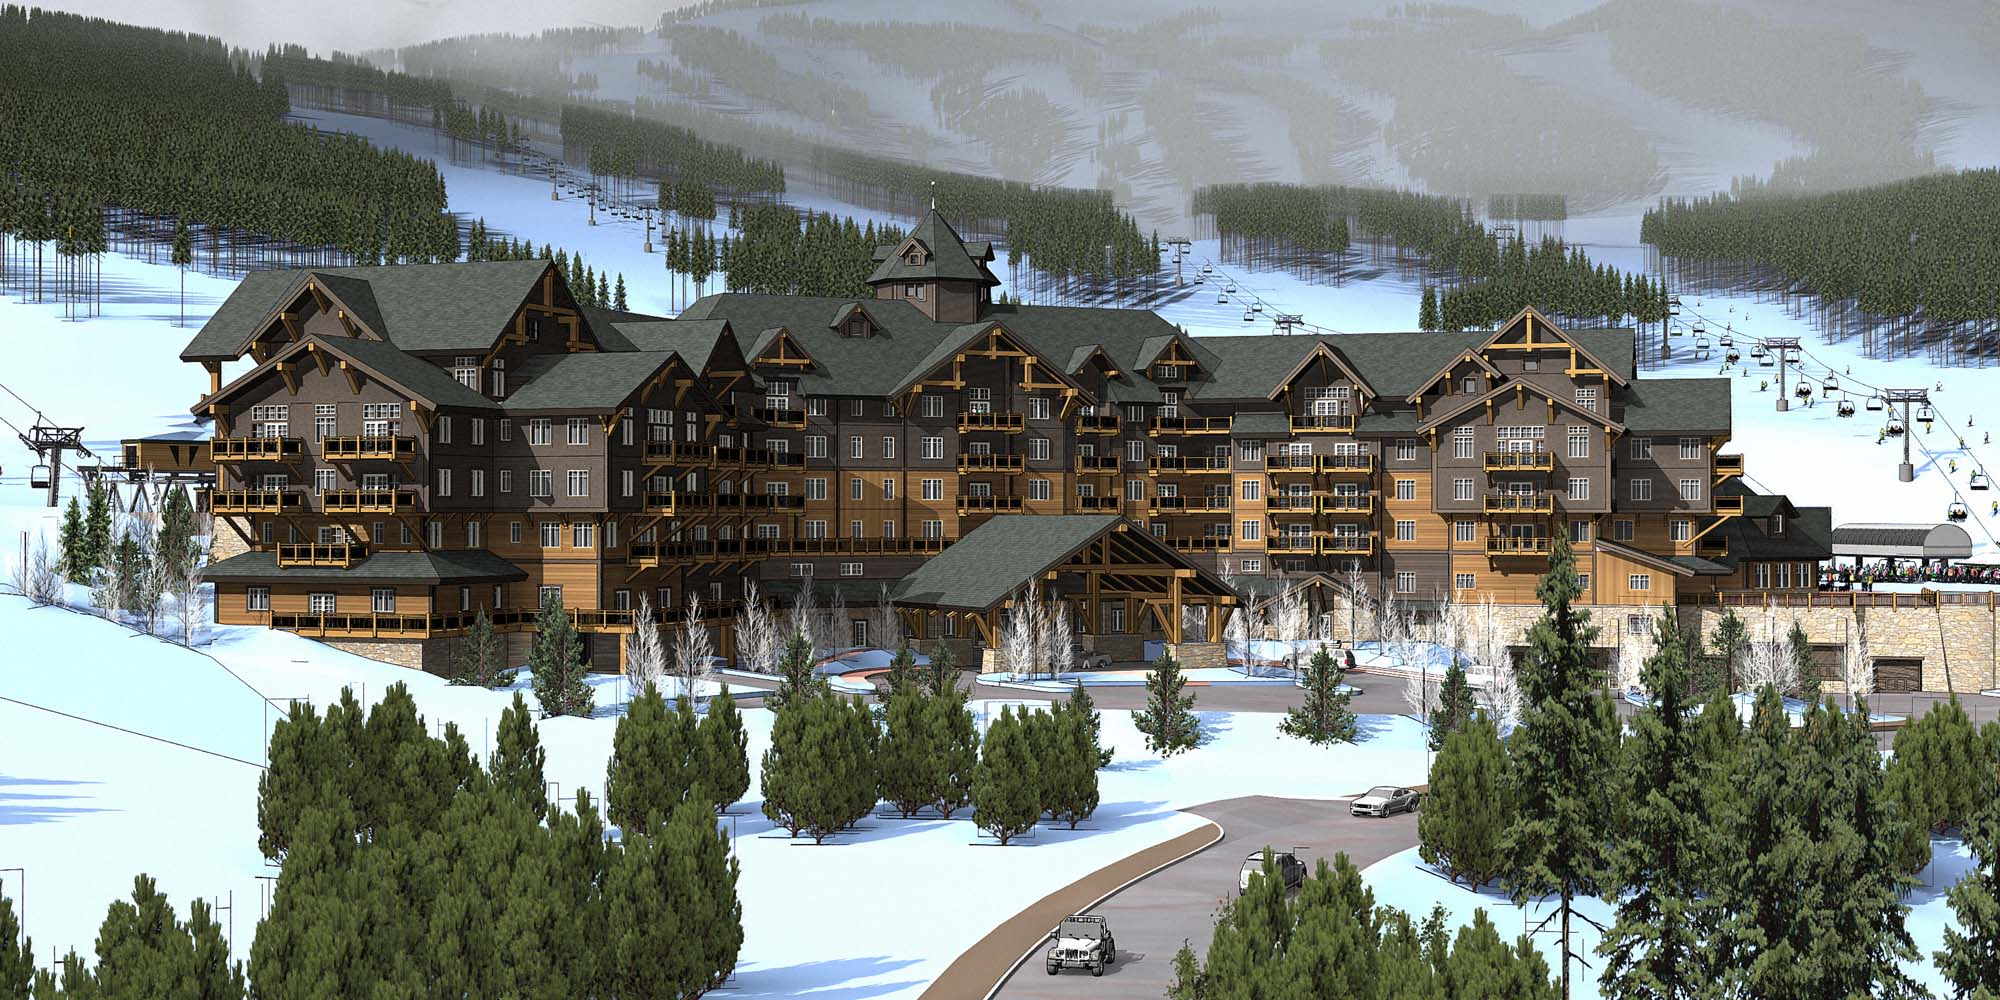 01 ONE SKI HILL PLACE.jpg